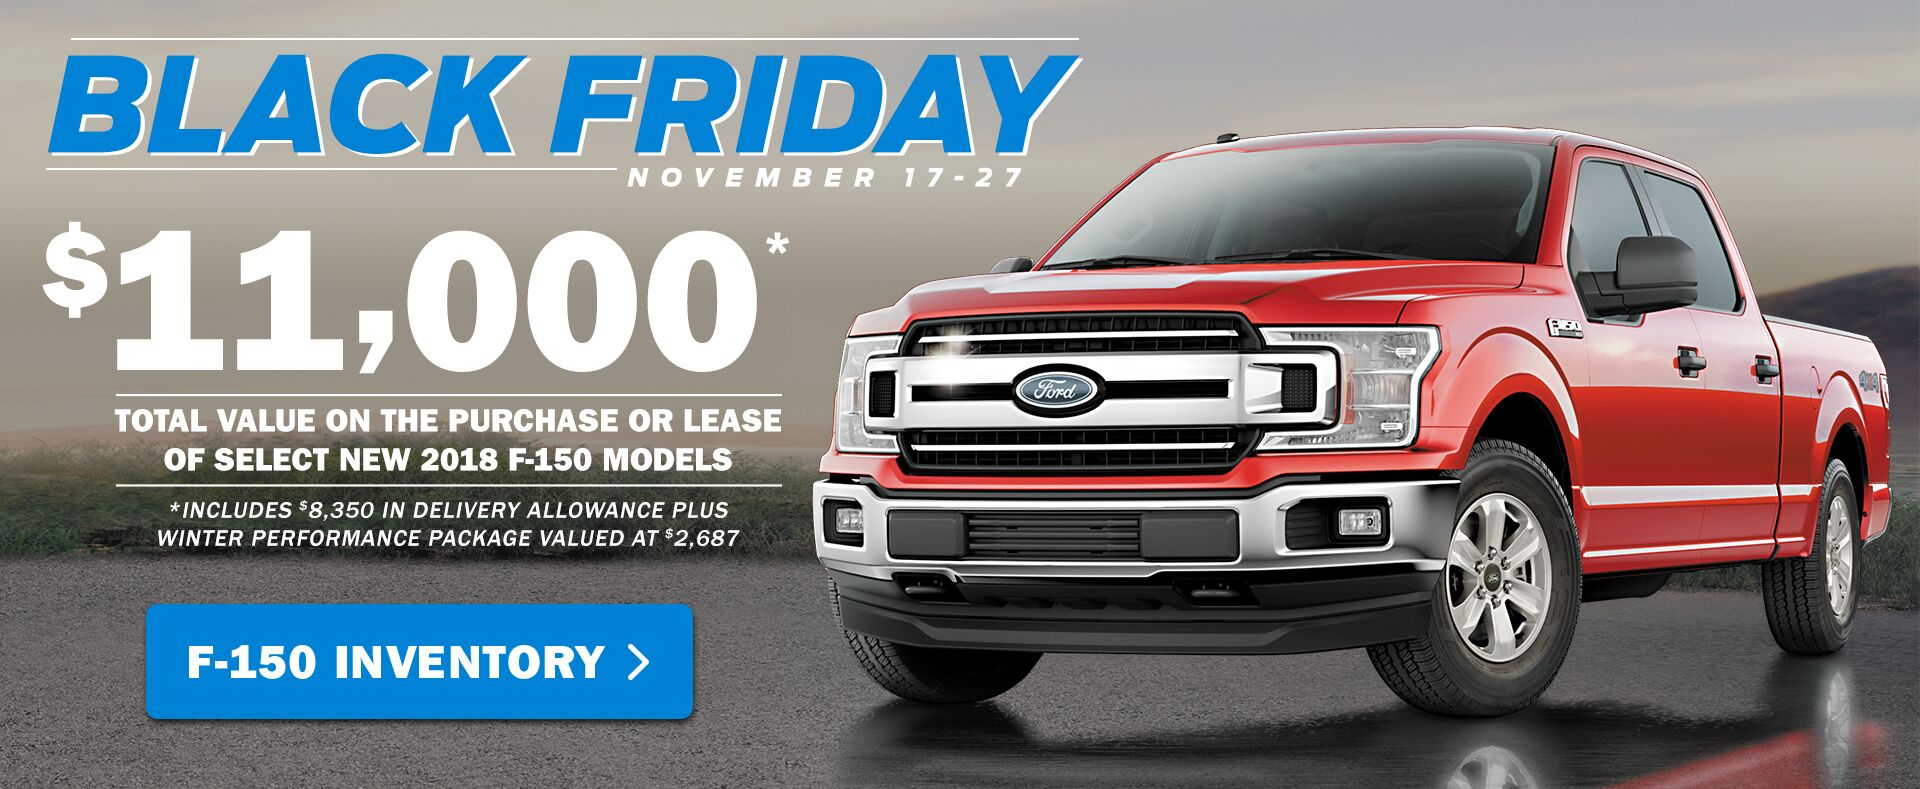 Black Friday - Truck Sale